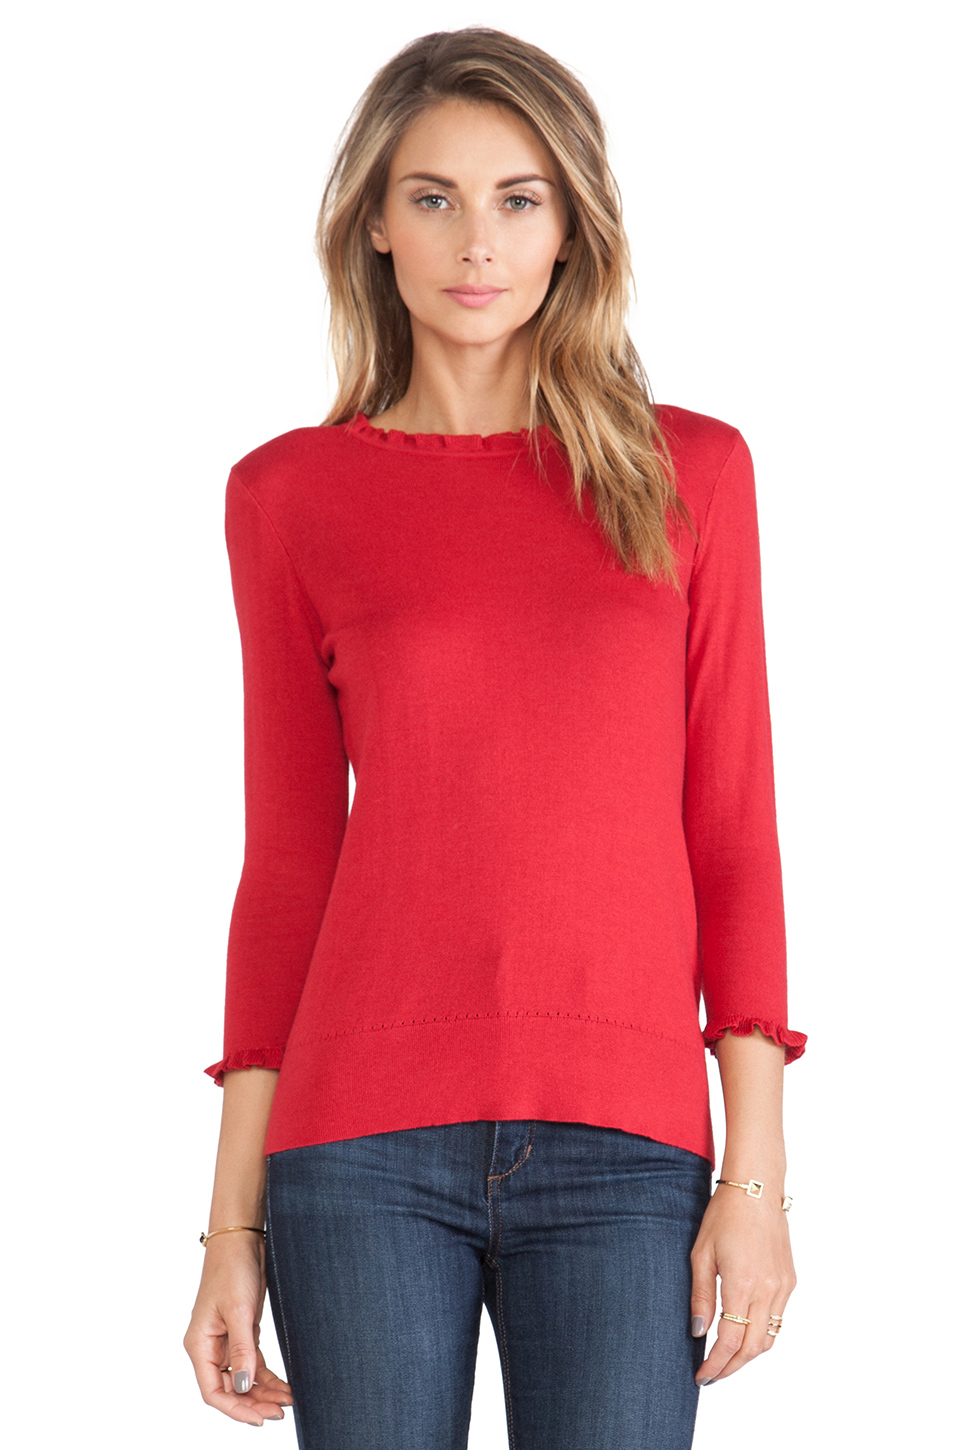 Kate spade new york bekki sweater in dynasty red from revolveclothing.com